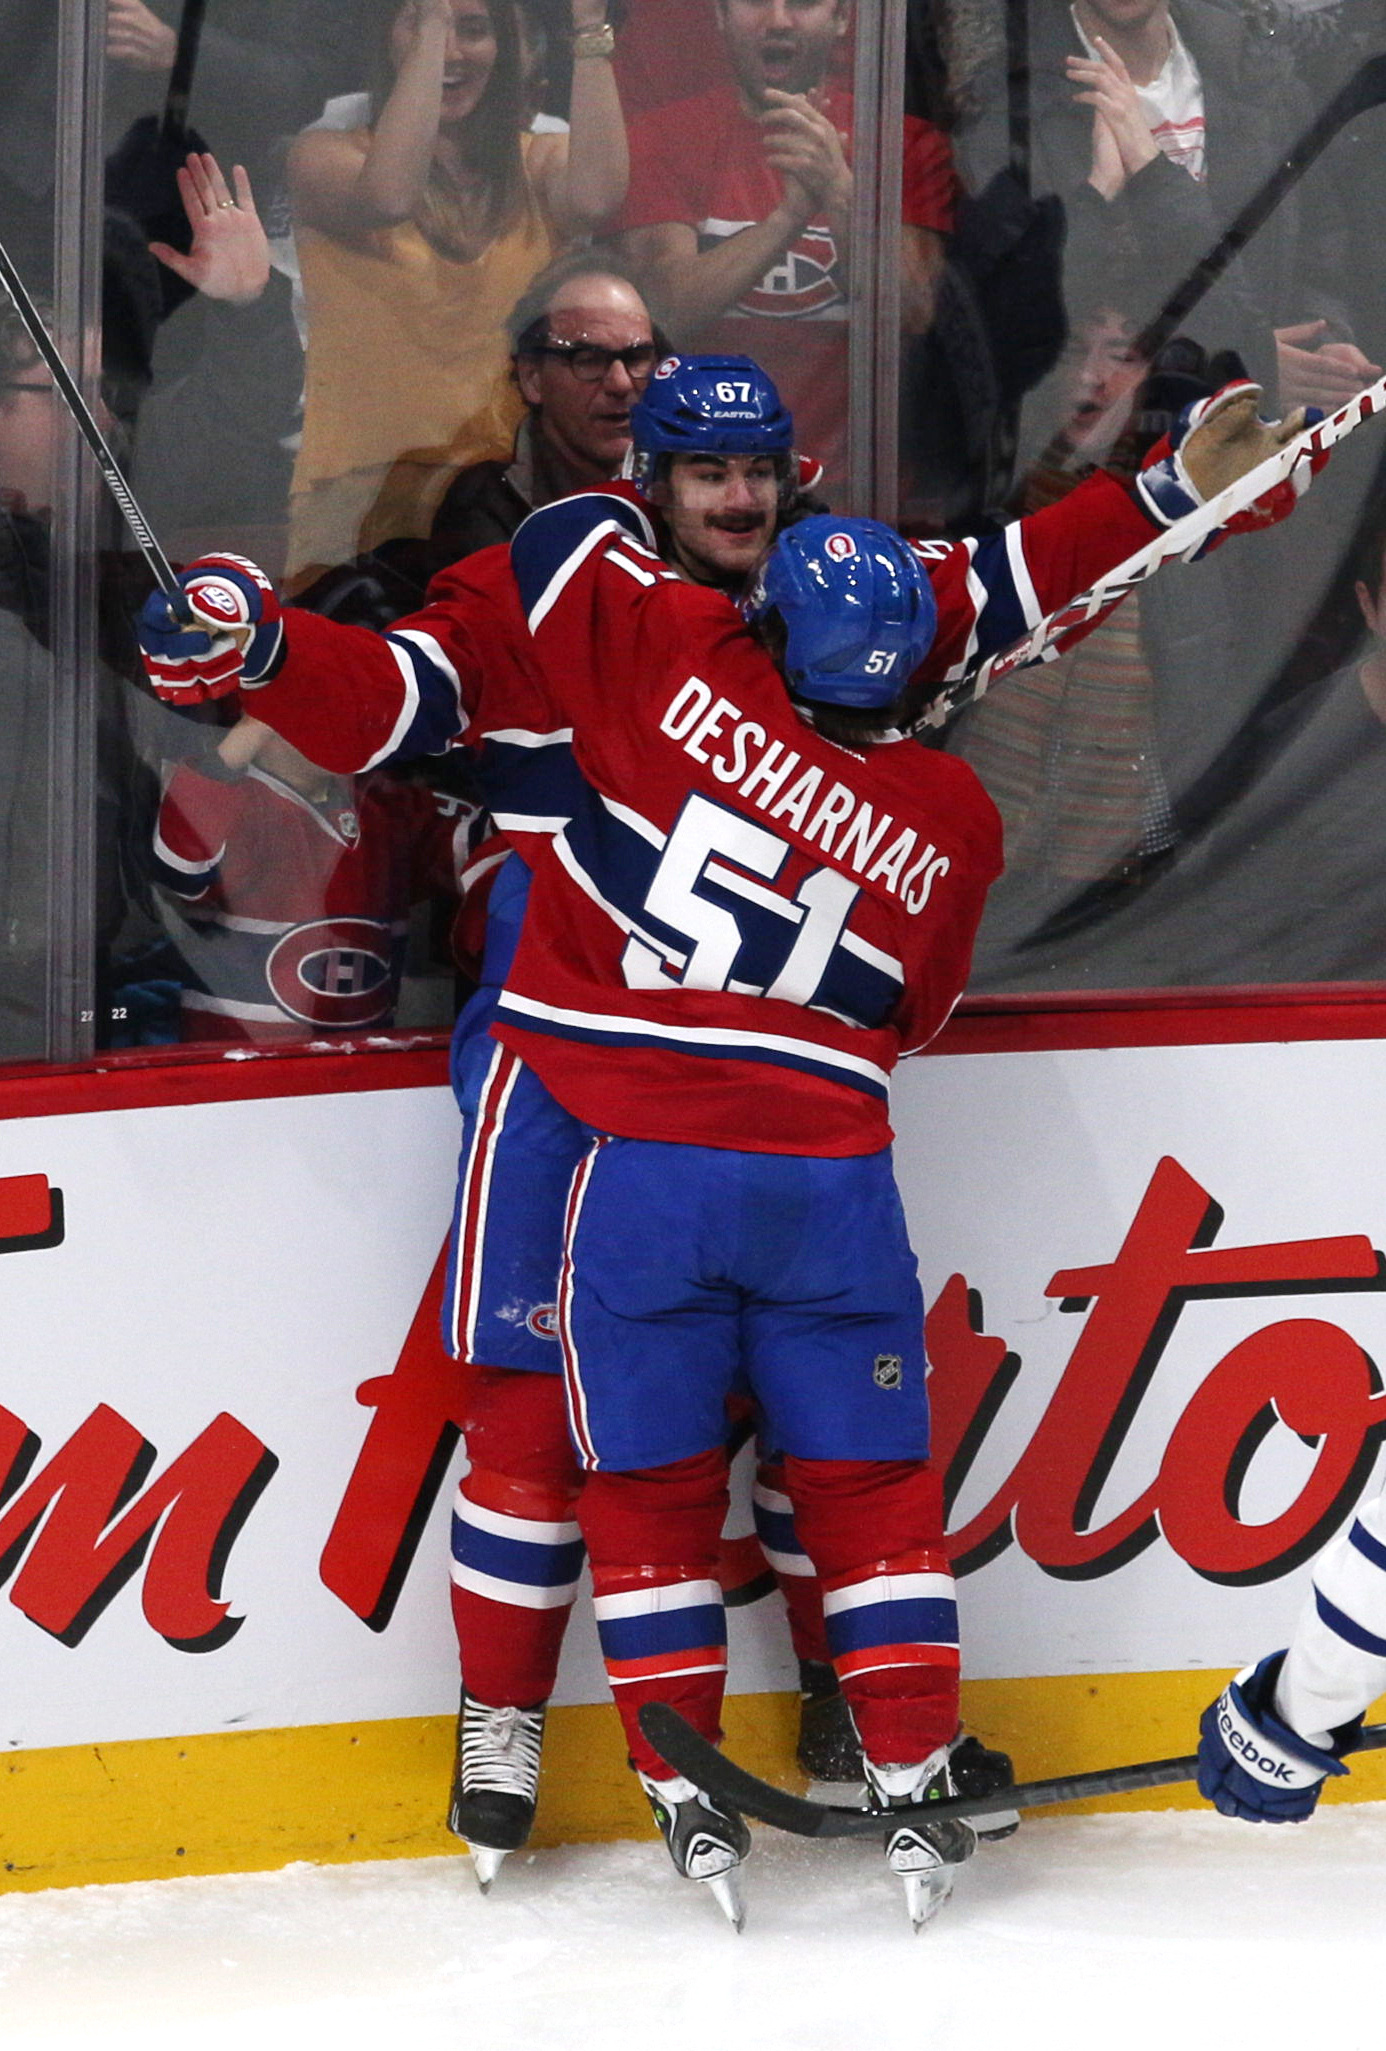 Desharnais and Pacioretty are finally clicking again!